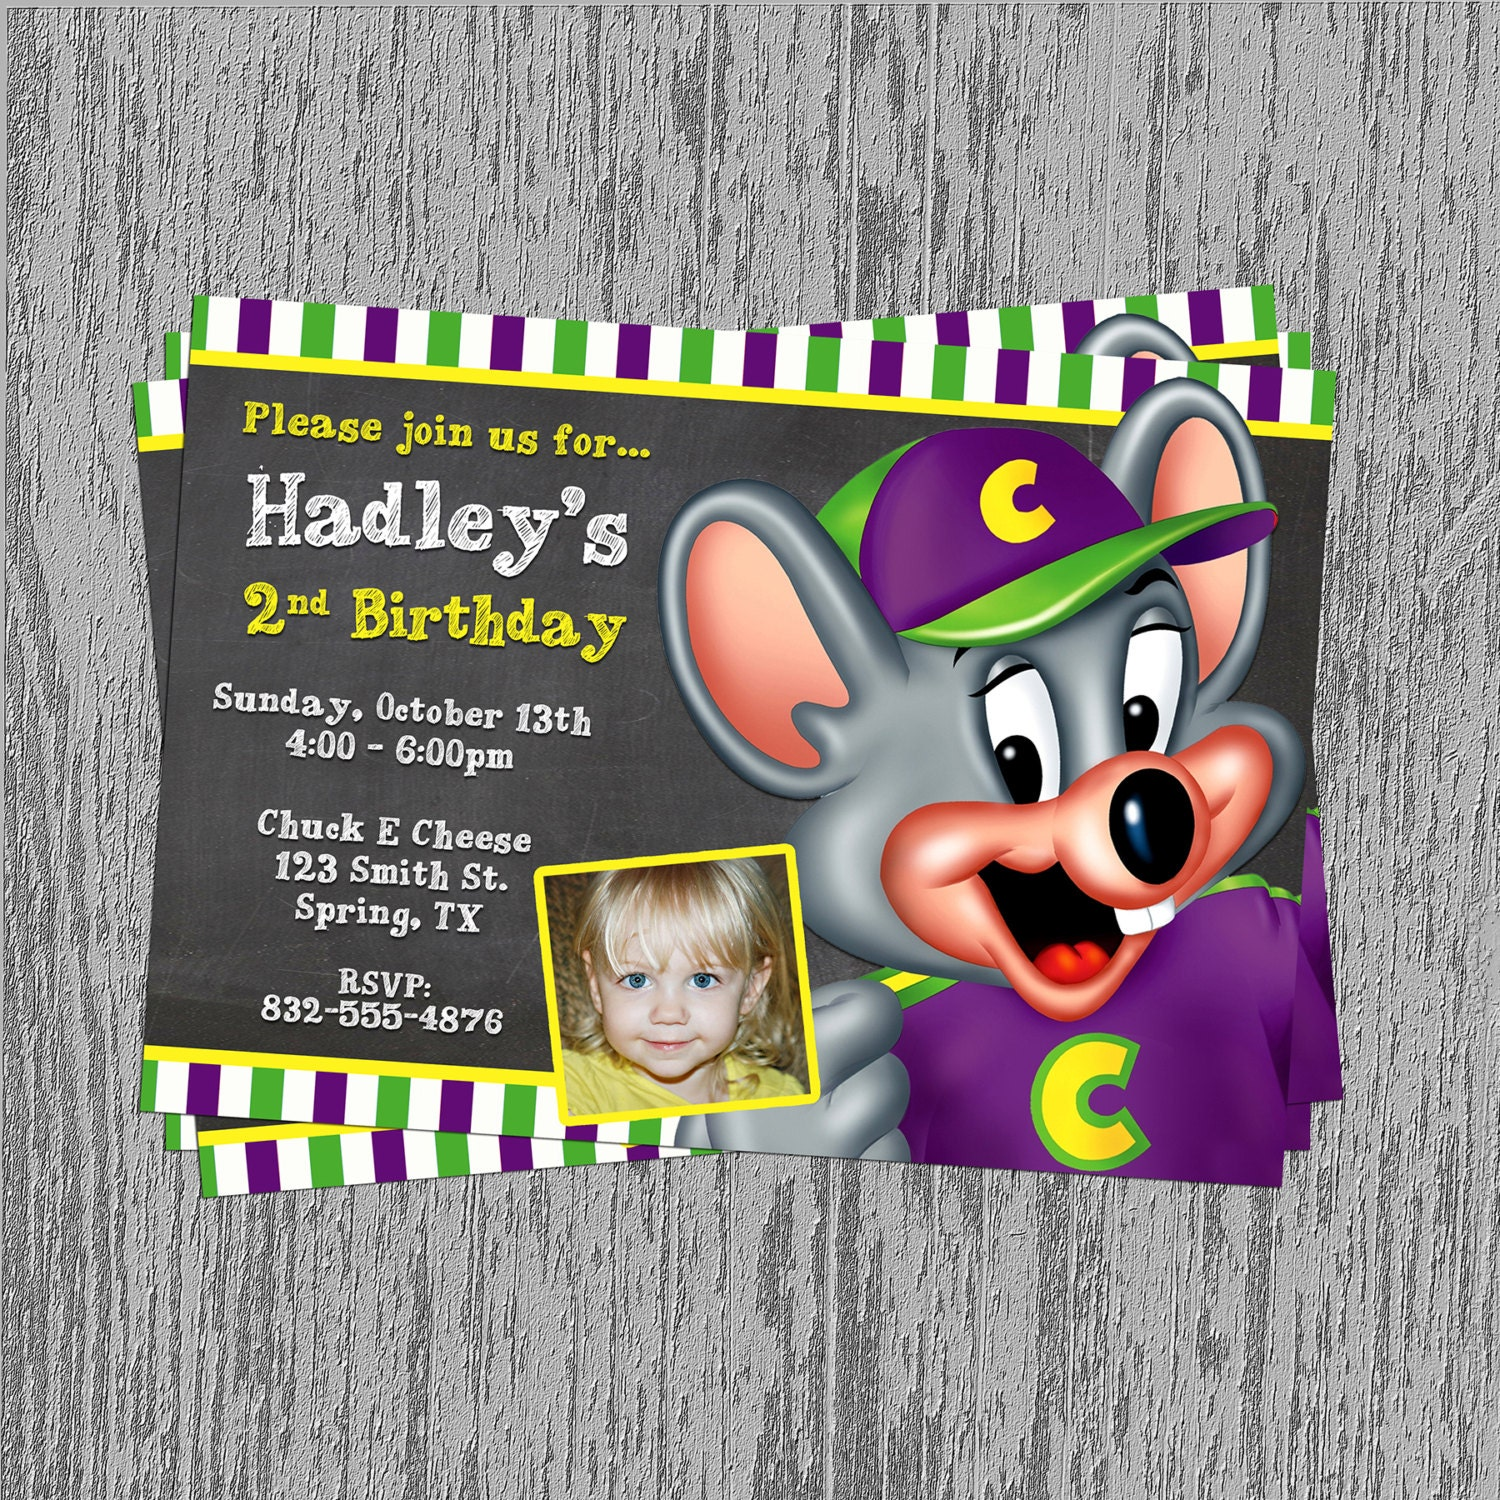 Chuck E Cheese Birthday Invitations was very inspiring ideas you may choose for invitation ideas